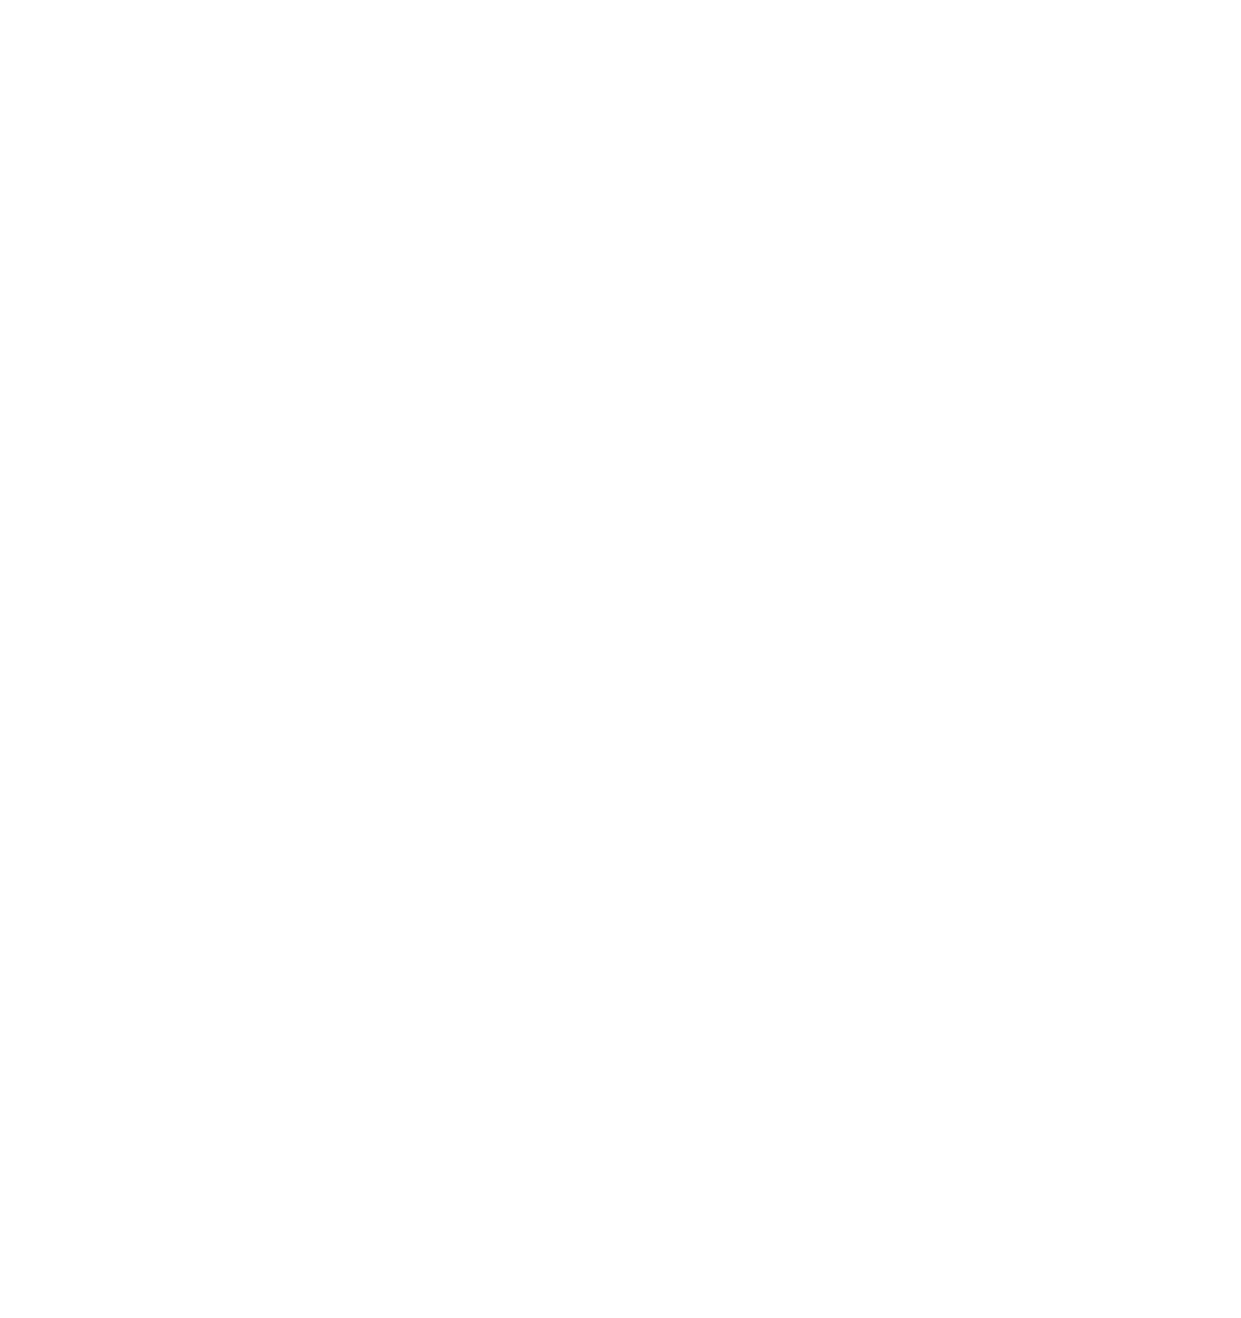 Medas instruments